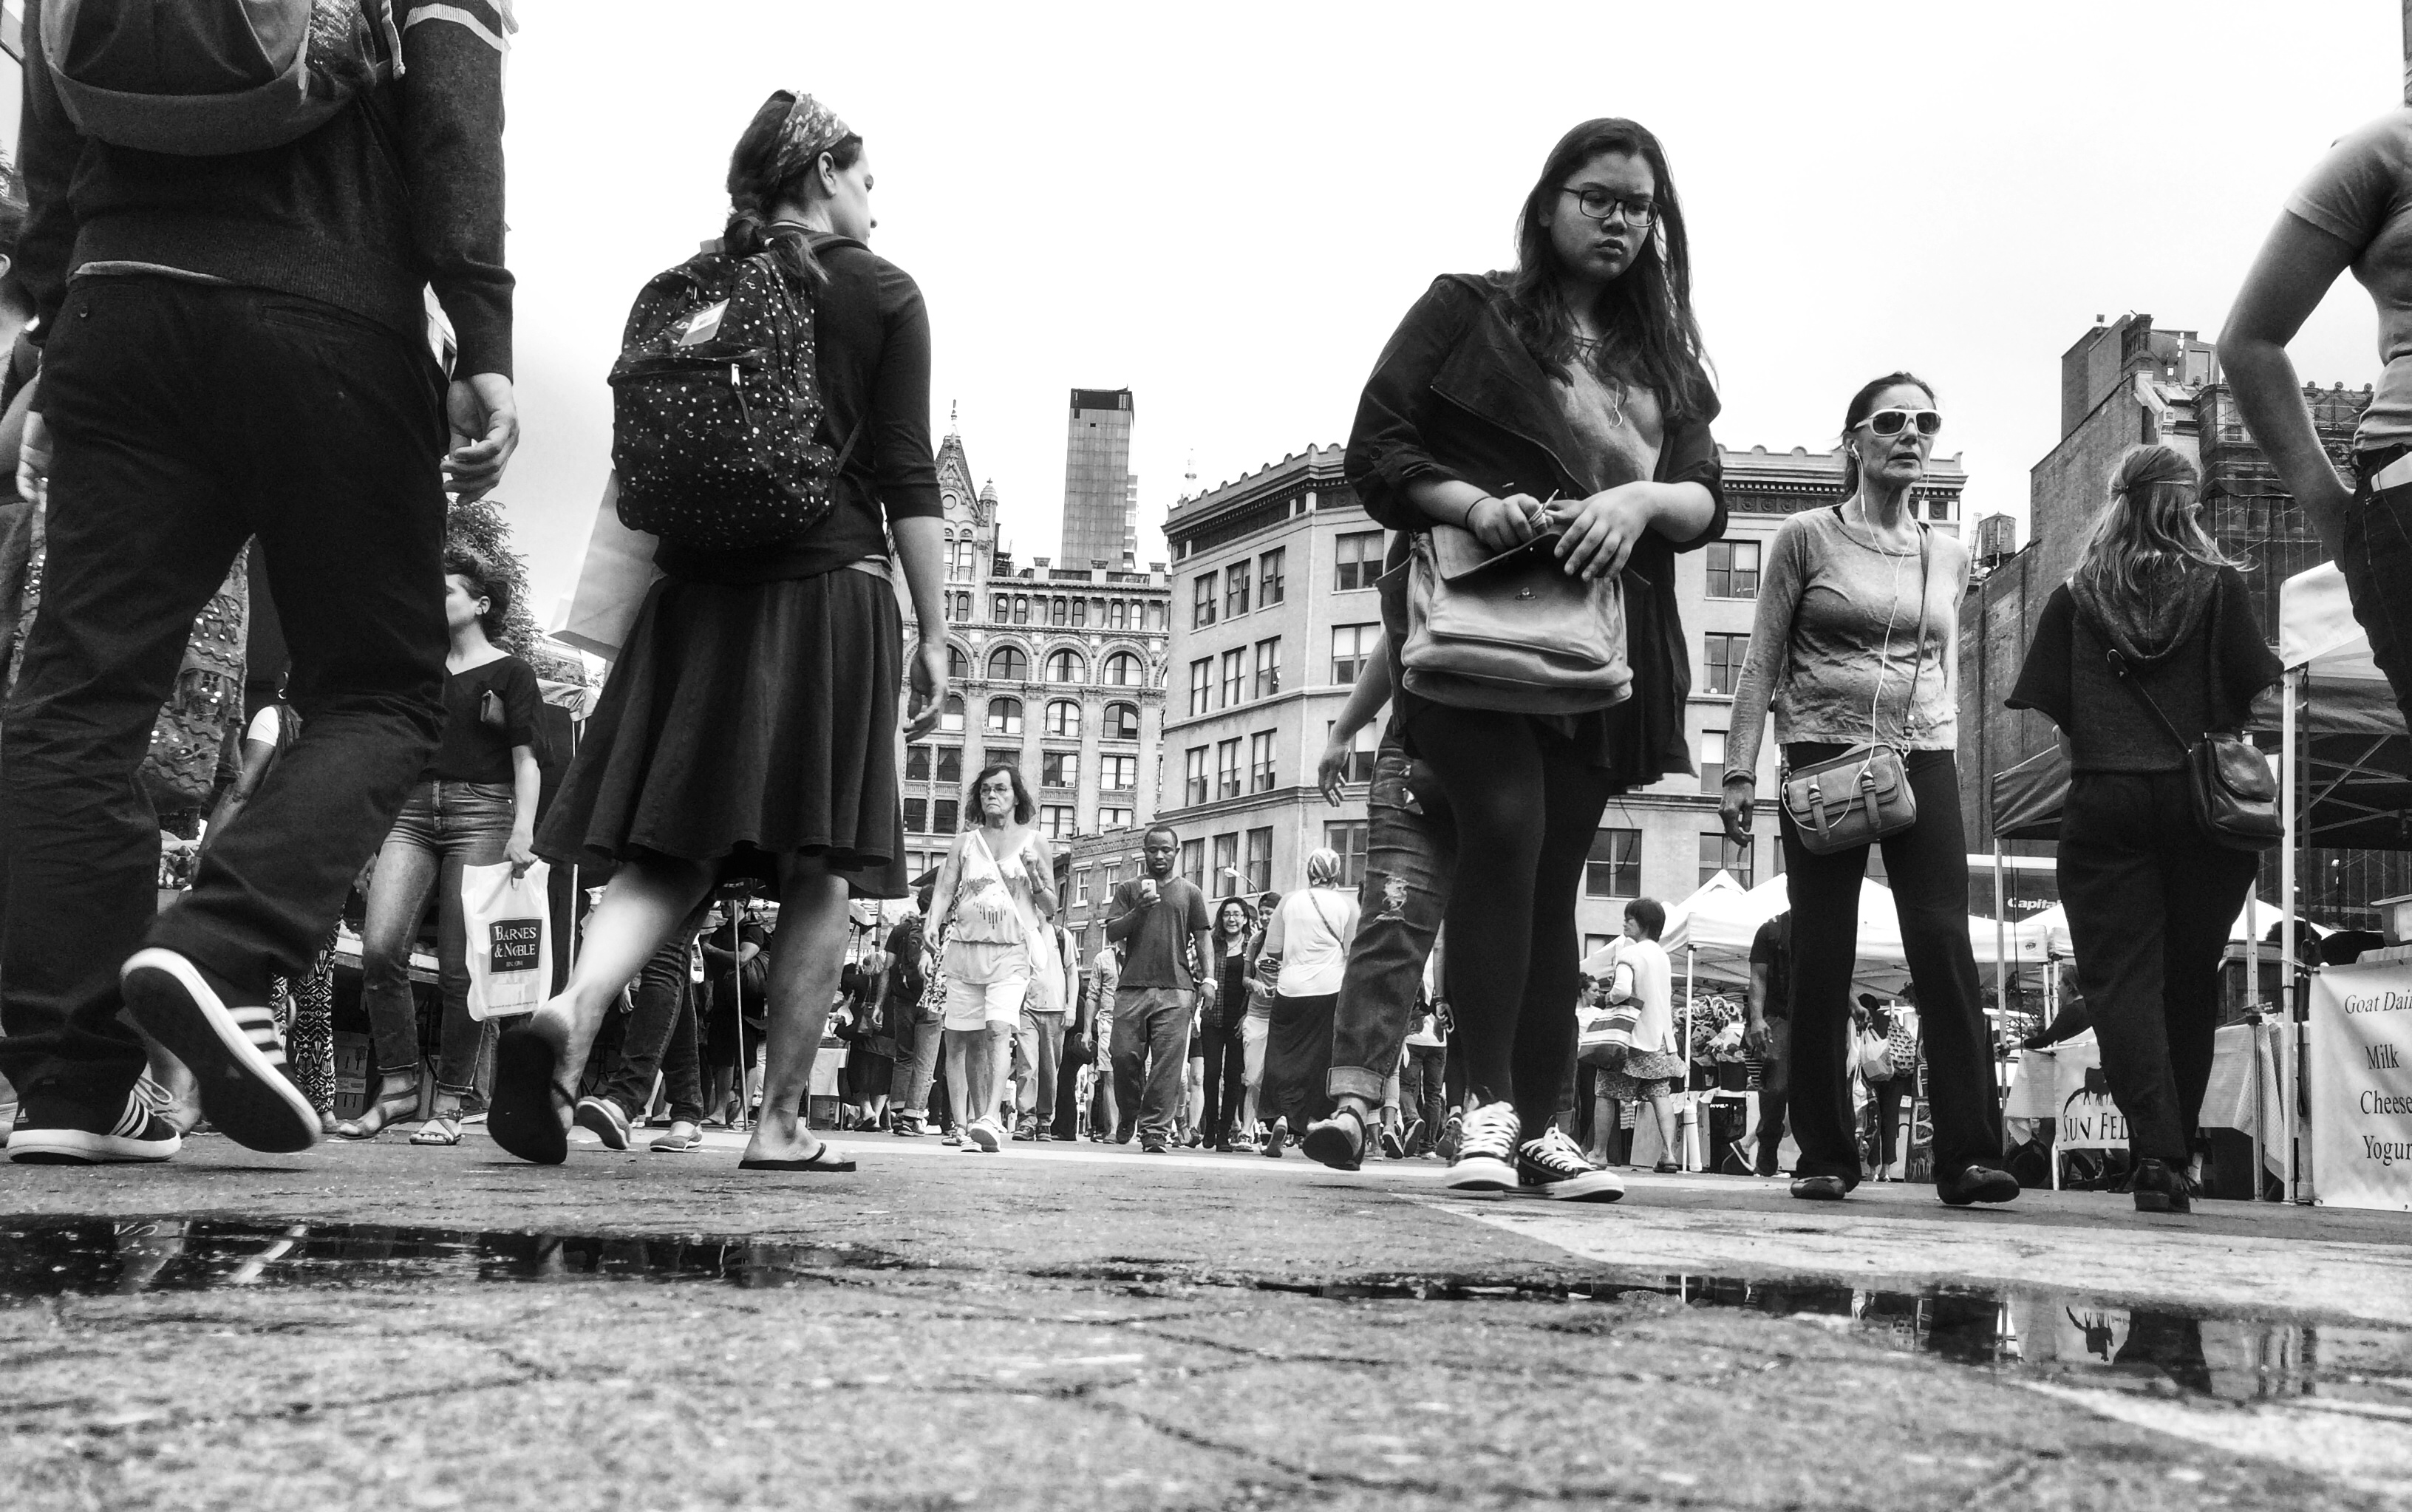 Union Square-New York City #StreetPhotography